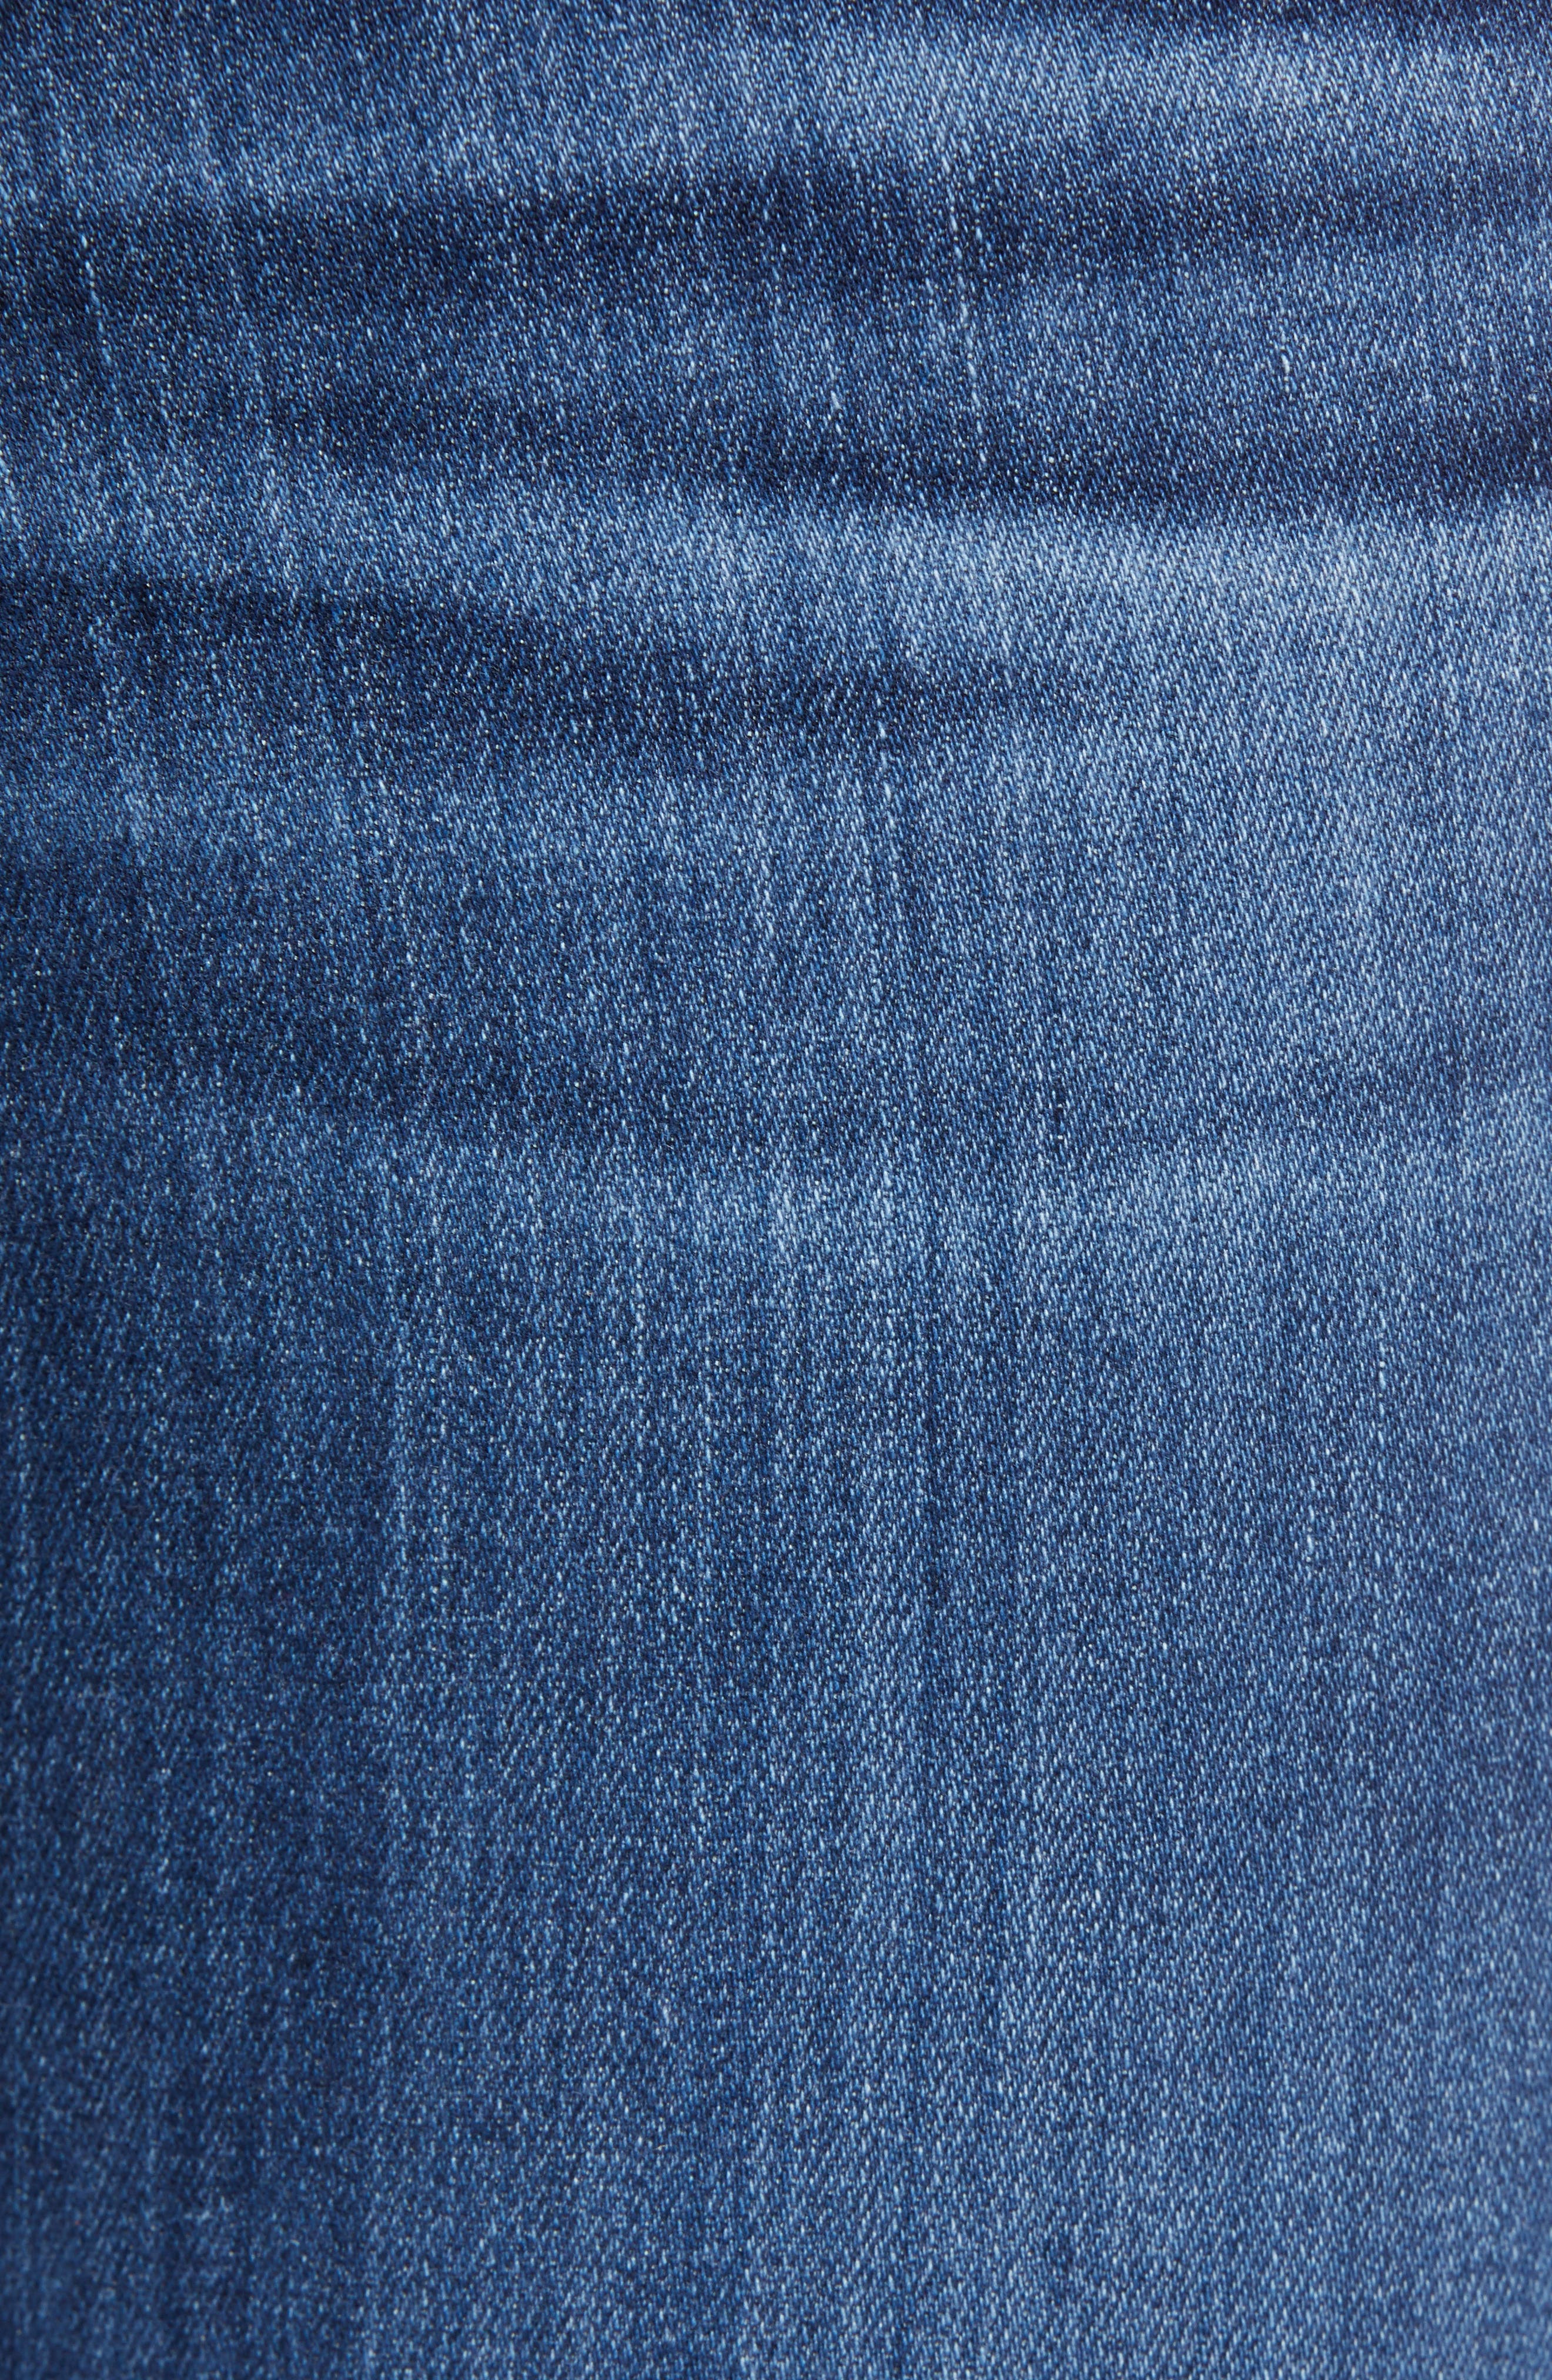 Angel Bootcut Jeans,                             Alternate thumbnail 6, color,                             05 YEAR BLUE ESSENCE